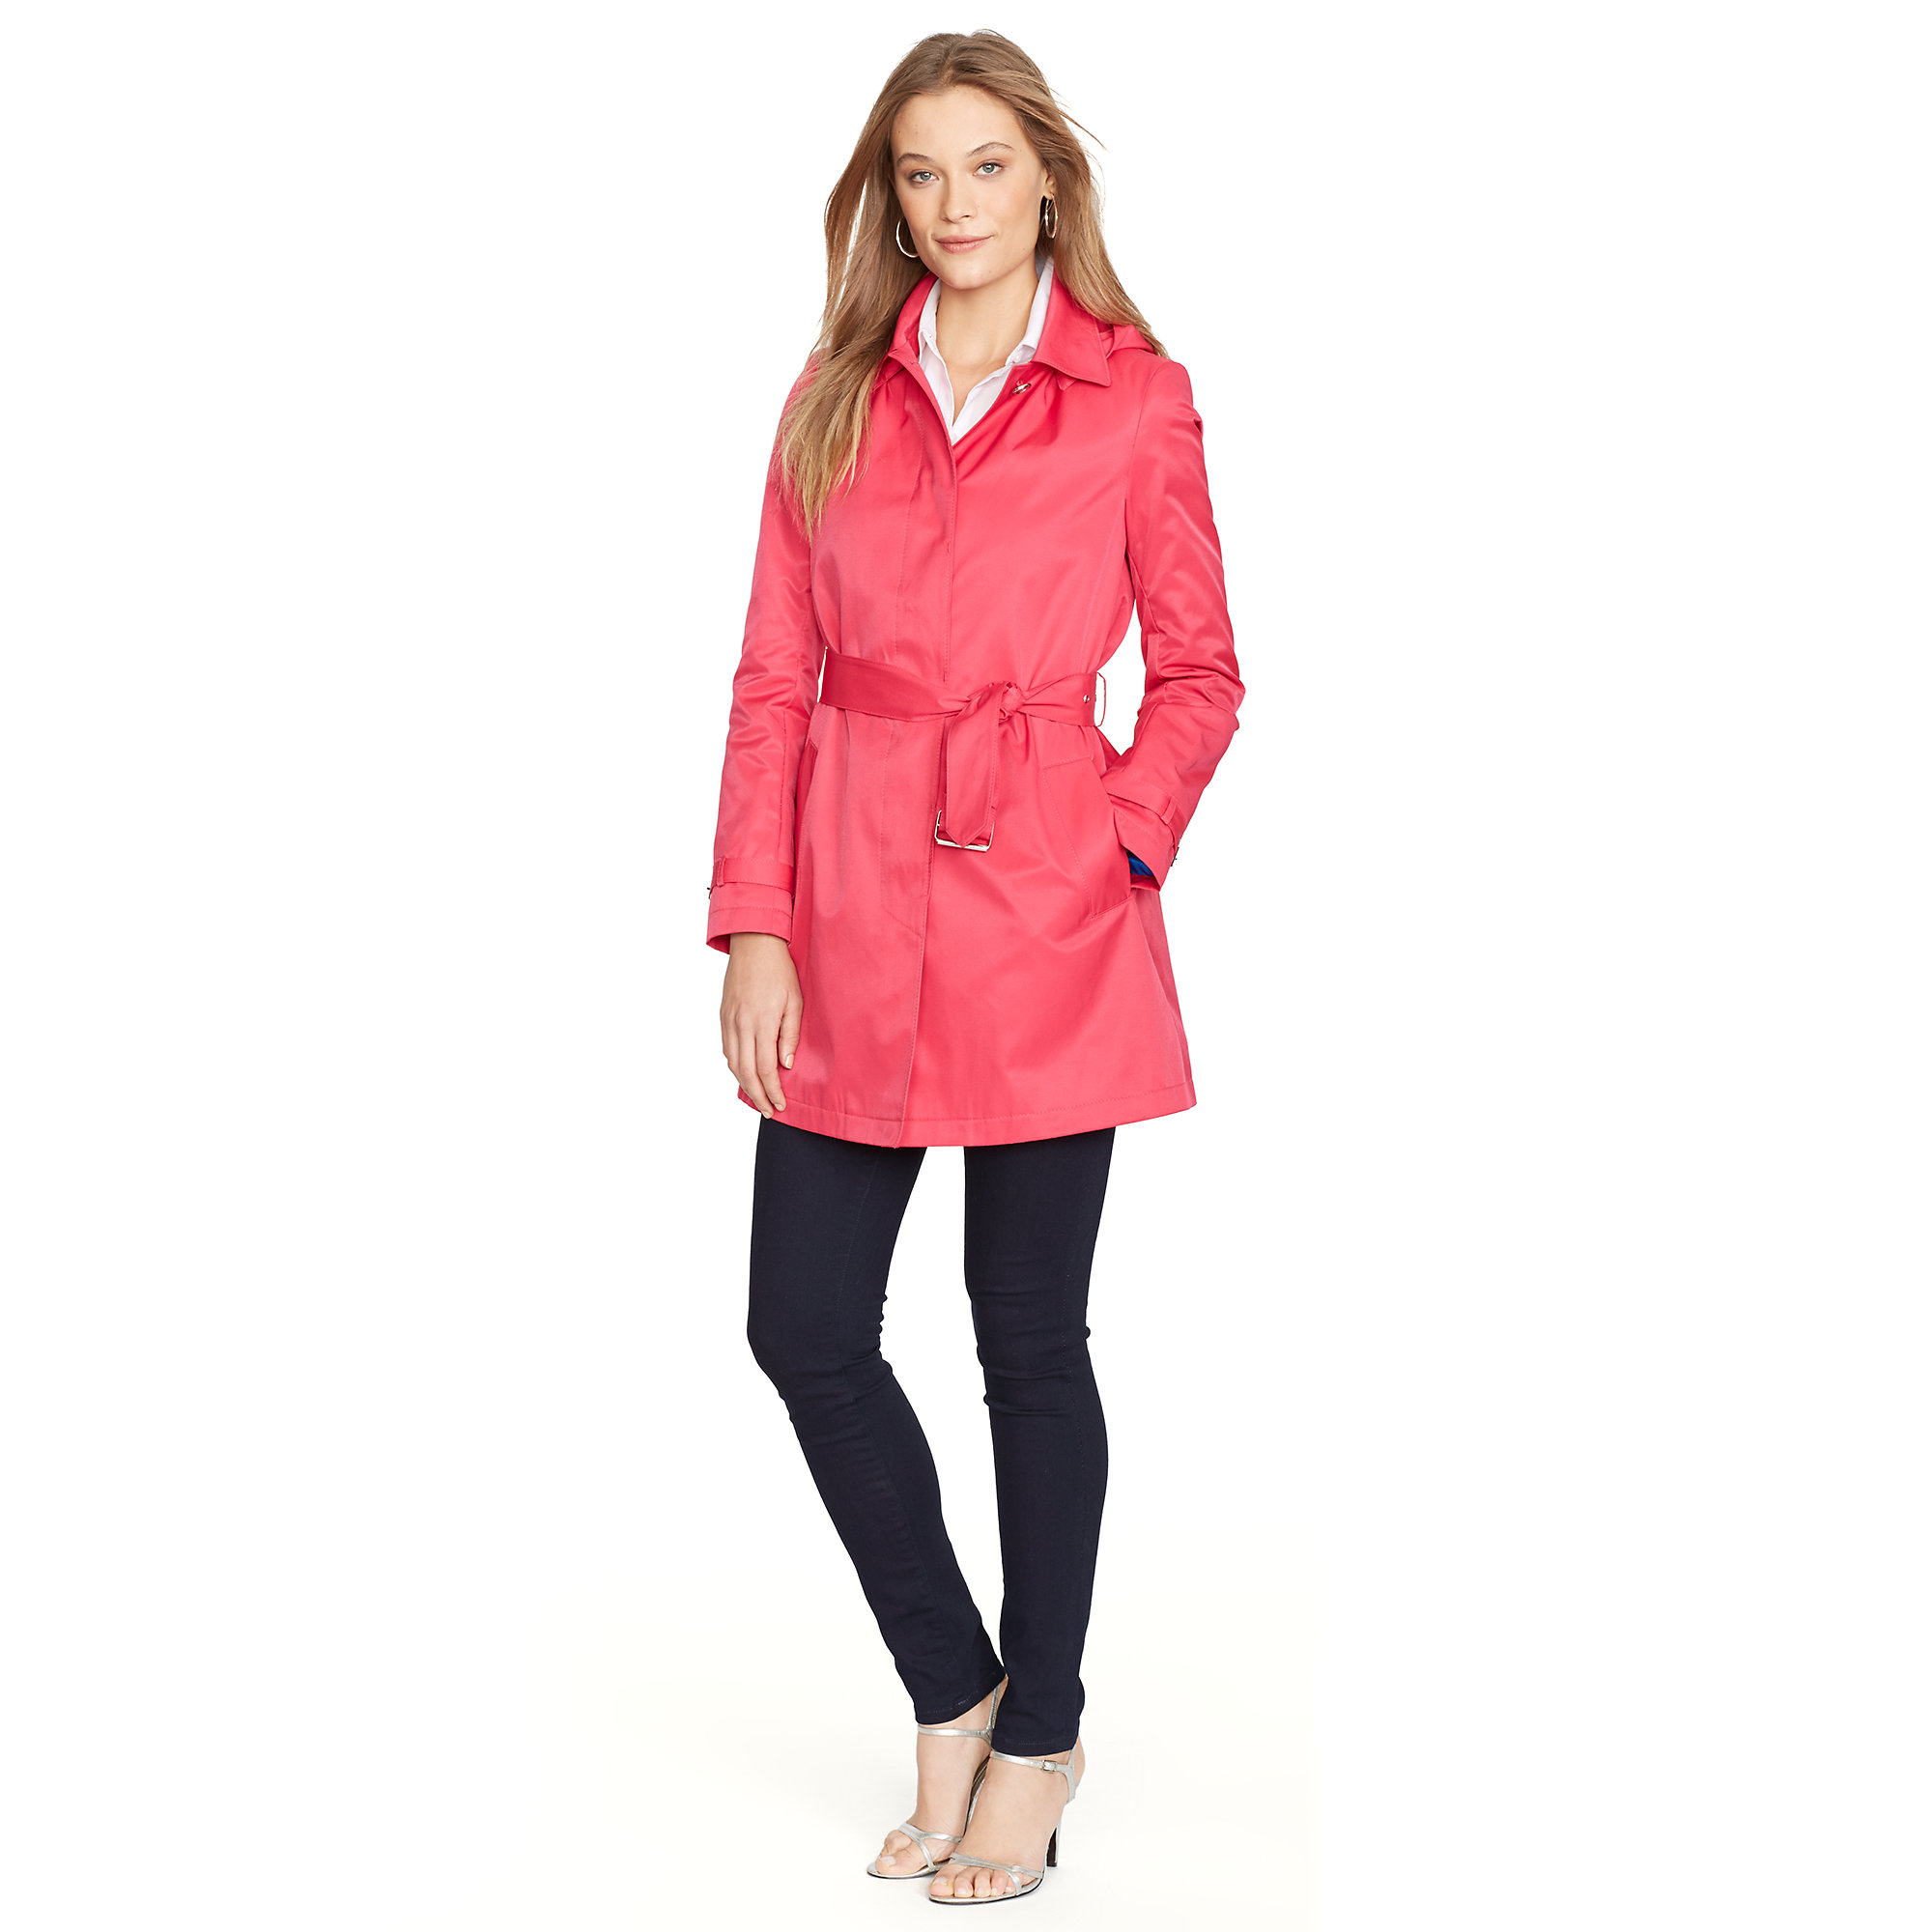 Shop for light pink trench coat online at Target. Free shipping on purchases over $35 and save 5% every day with your Target REDcard.